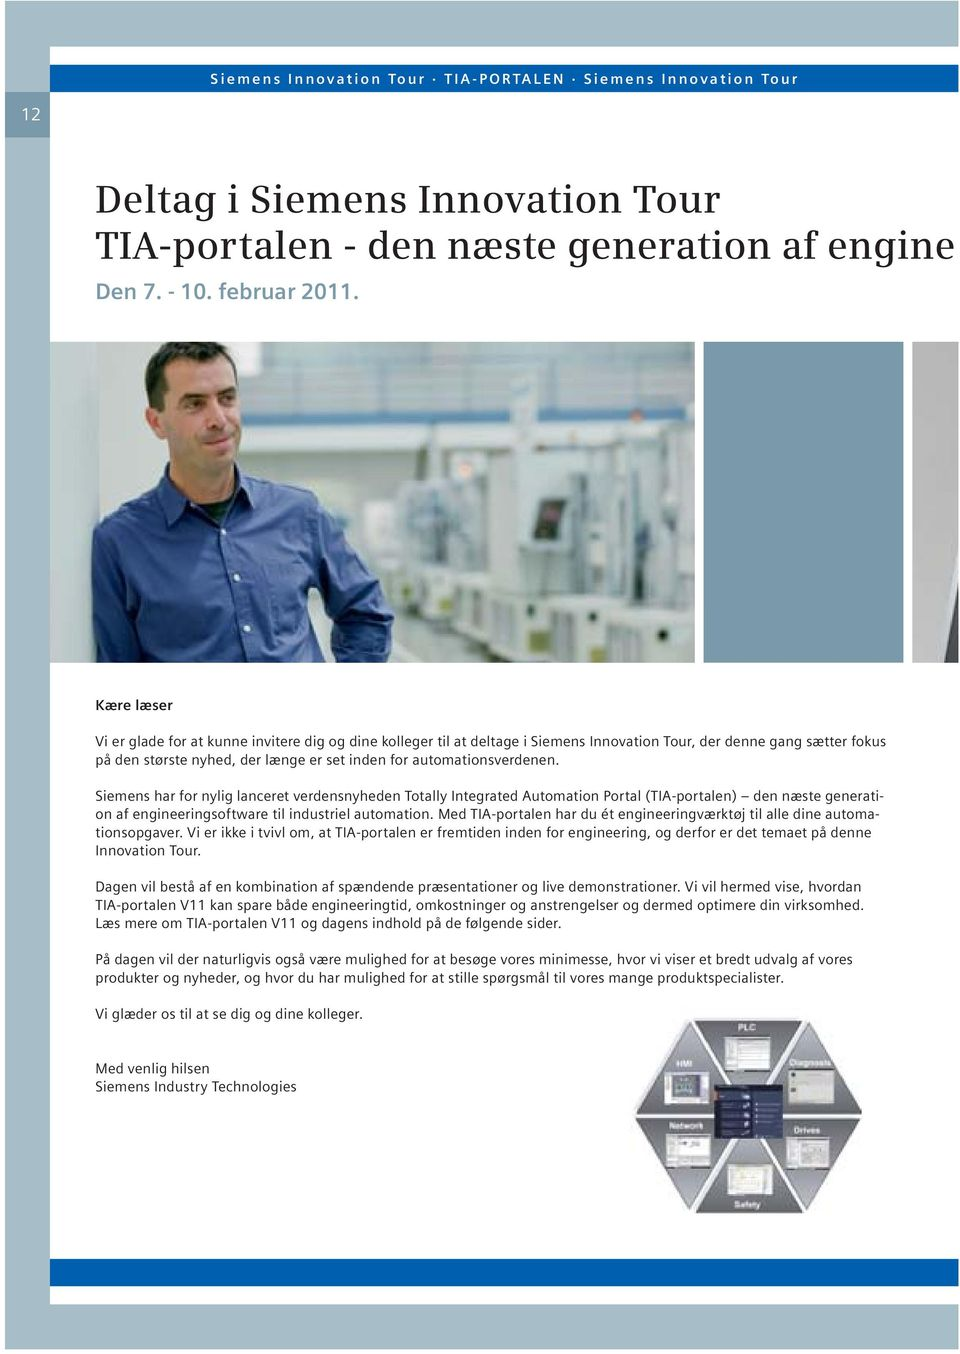 automationsverdenen. Siemens har for nylig lanceret verdensnyheden Totally Integrated Automation Portal (TIA-portalen) den næste generation af engineeringsoftware til industriel automation.